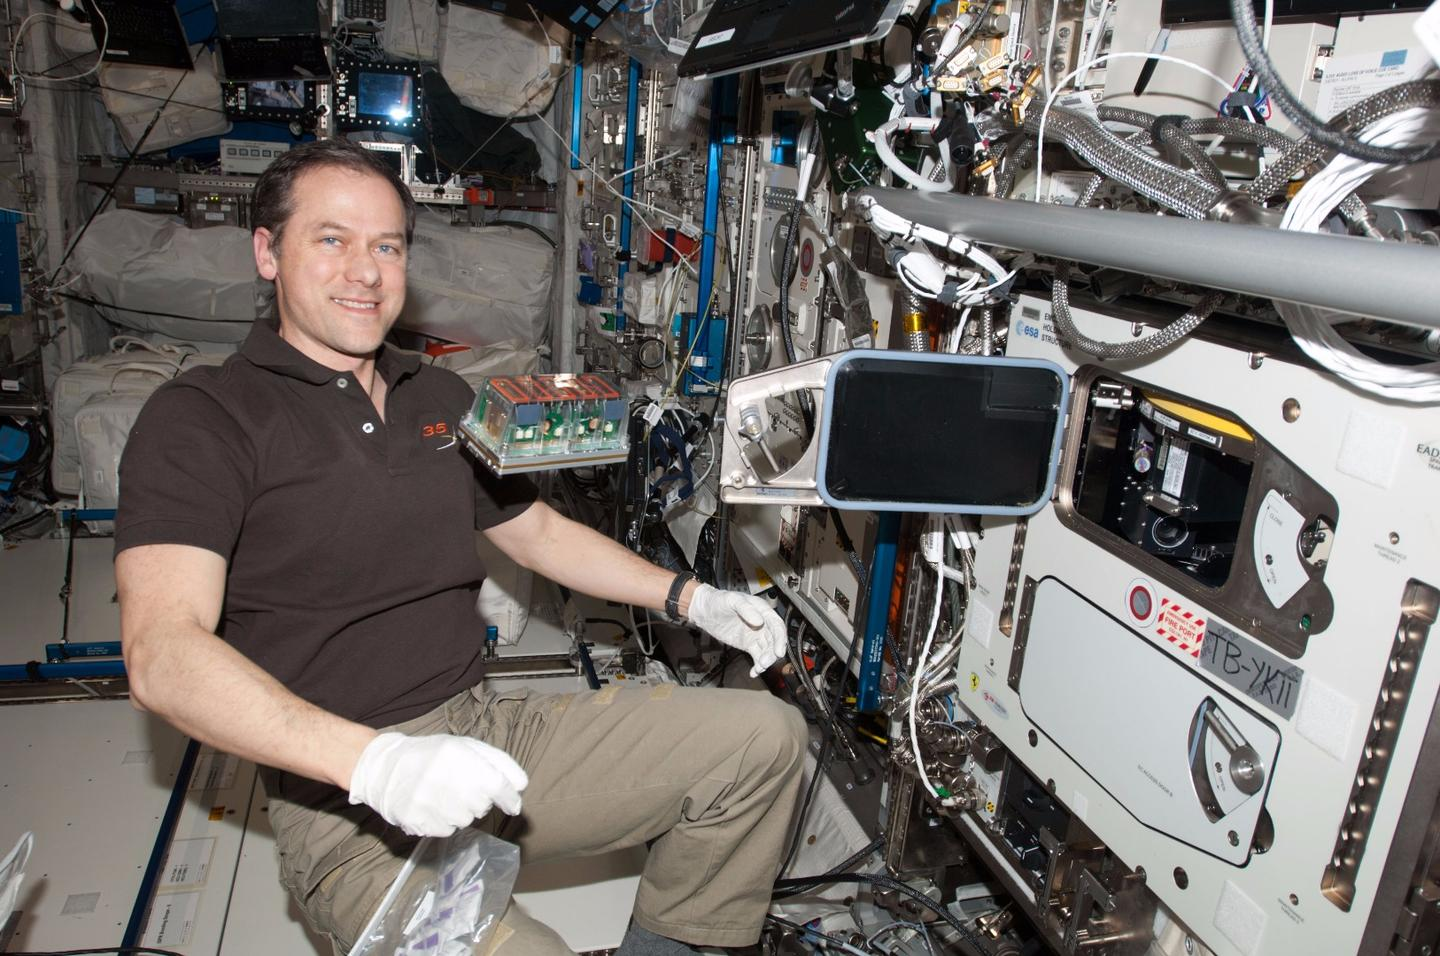 NASA astronaut Tom Marshburn, with a seedling cassette about to be loaded into the incubator